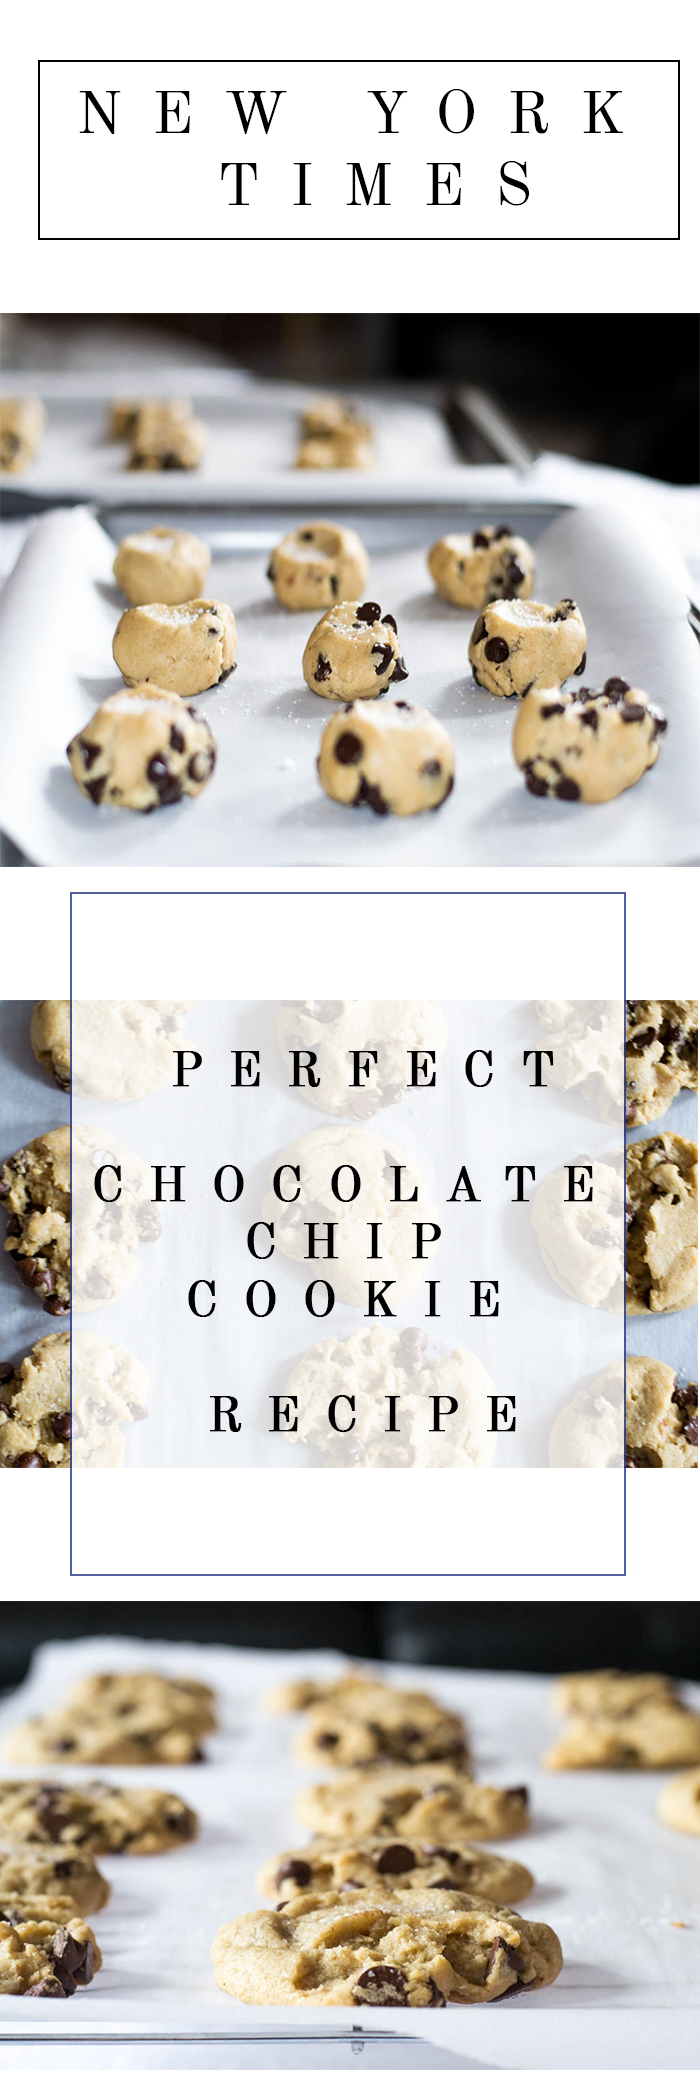 Award-winning vegan chocolate chip cookies recipe. Try them today! #recipeideas #chocolatechipcookies #veganrecipes